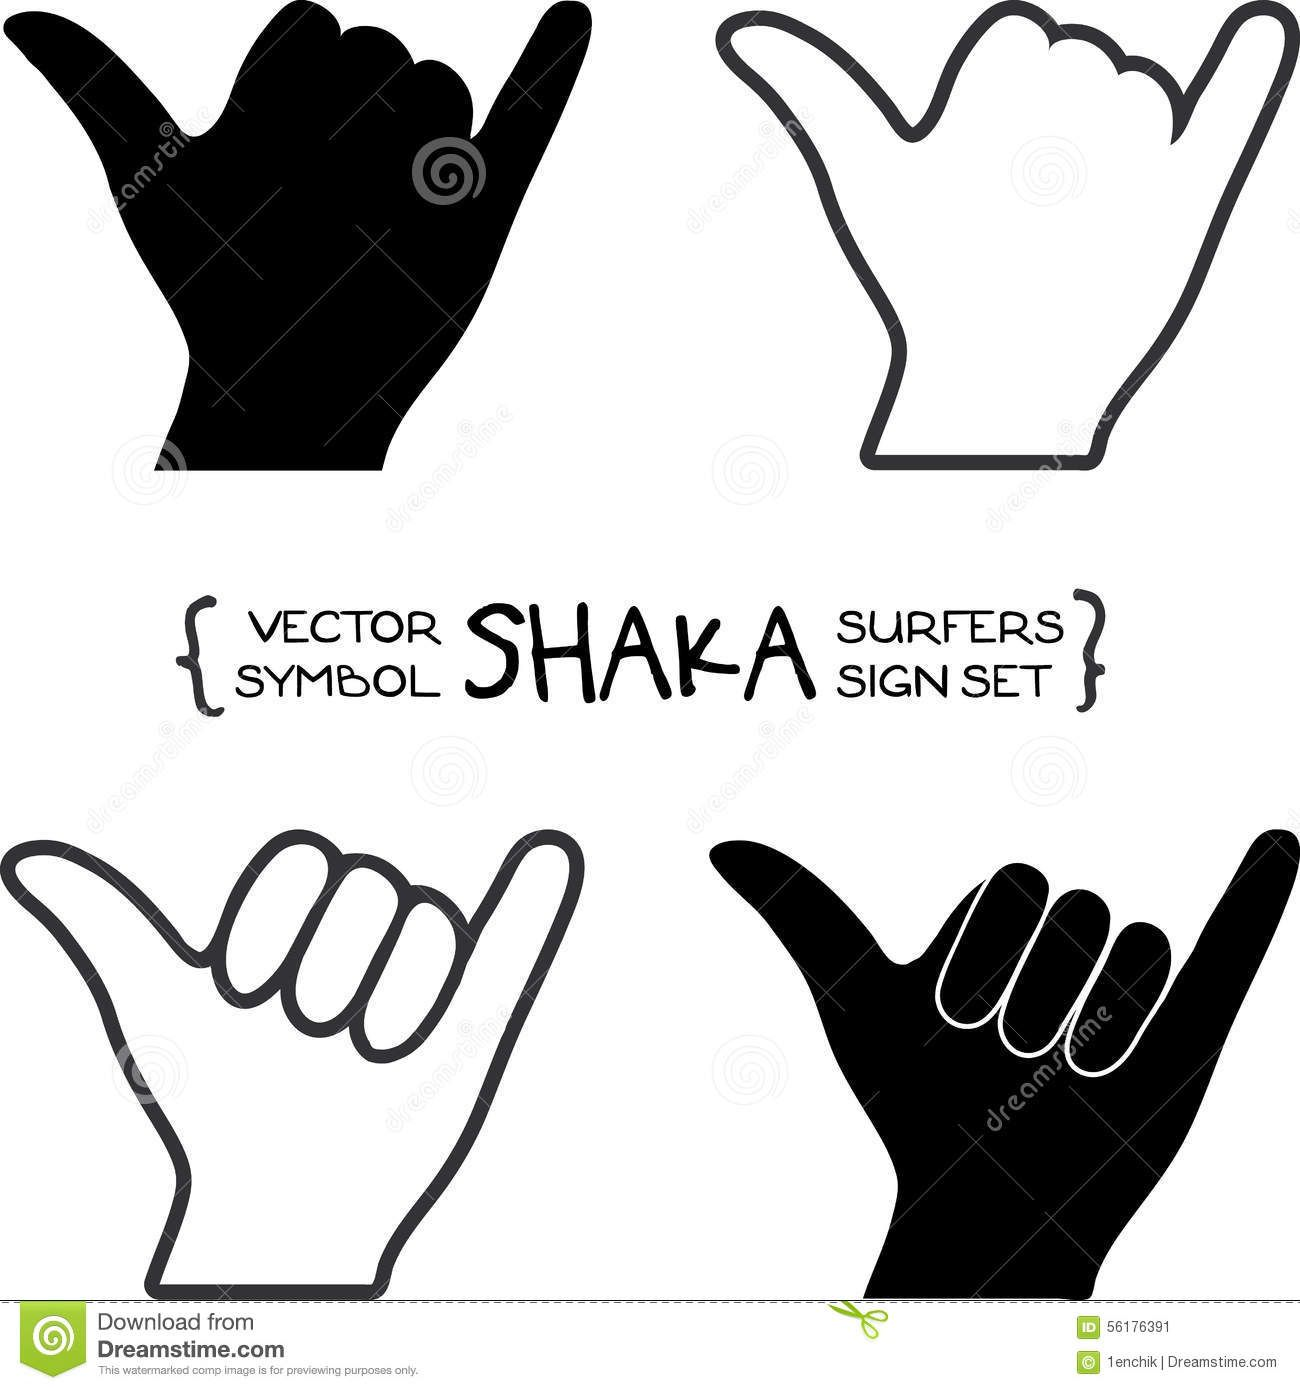 599b3dac6cc2 Vector Surfers Shaka Hand Sign - Download From Over 53 Million High ...